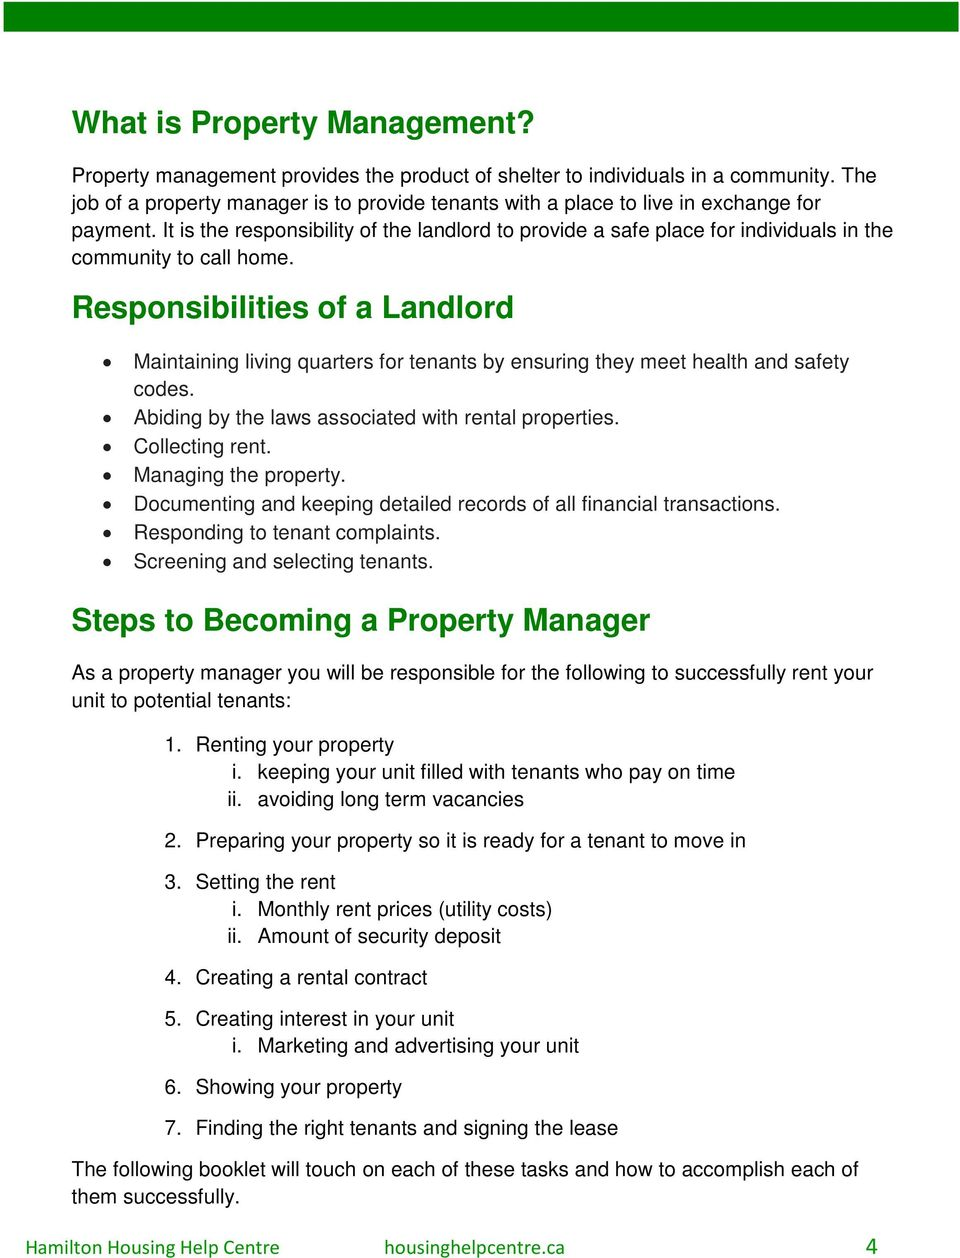 It is the responsibility of the landlord to provide a safe place for individuals in the community to call home.